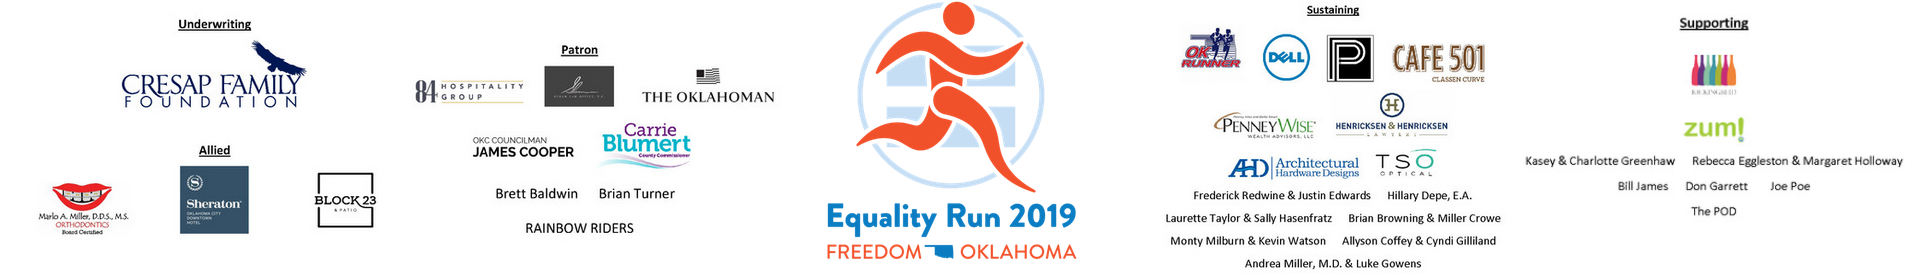 Register for the 2019 Equality Run (7th Annual)